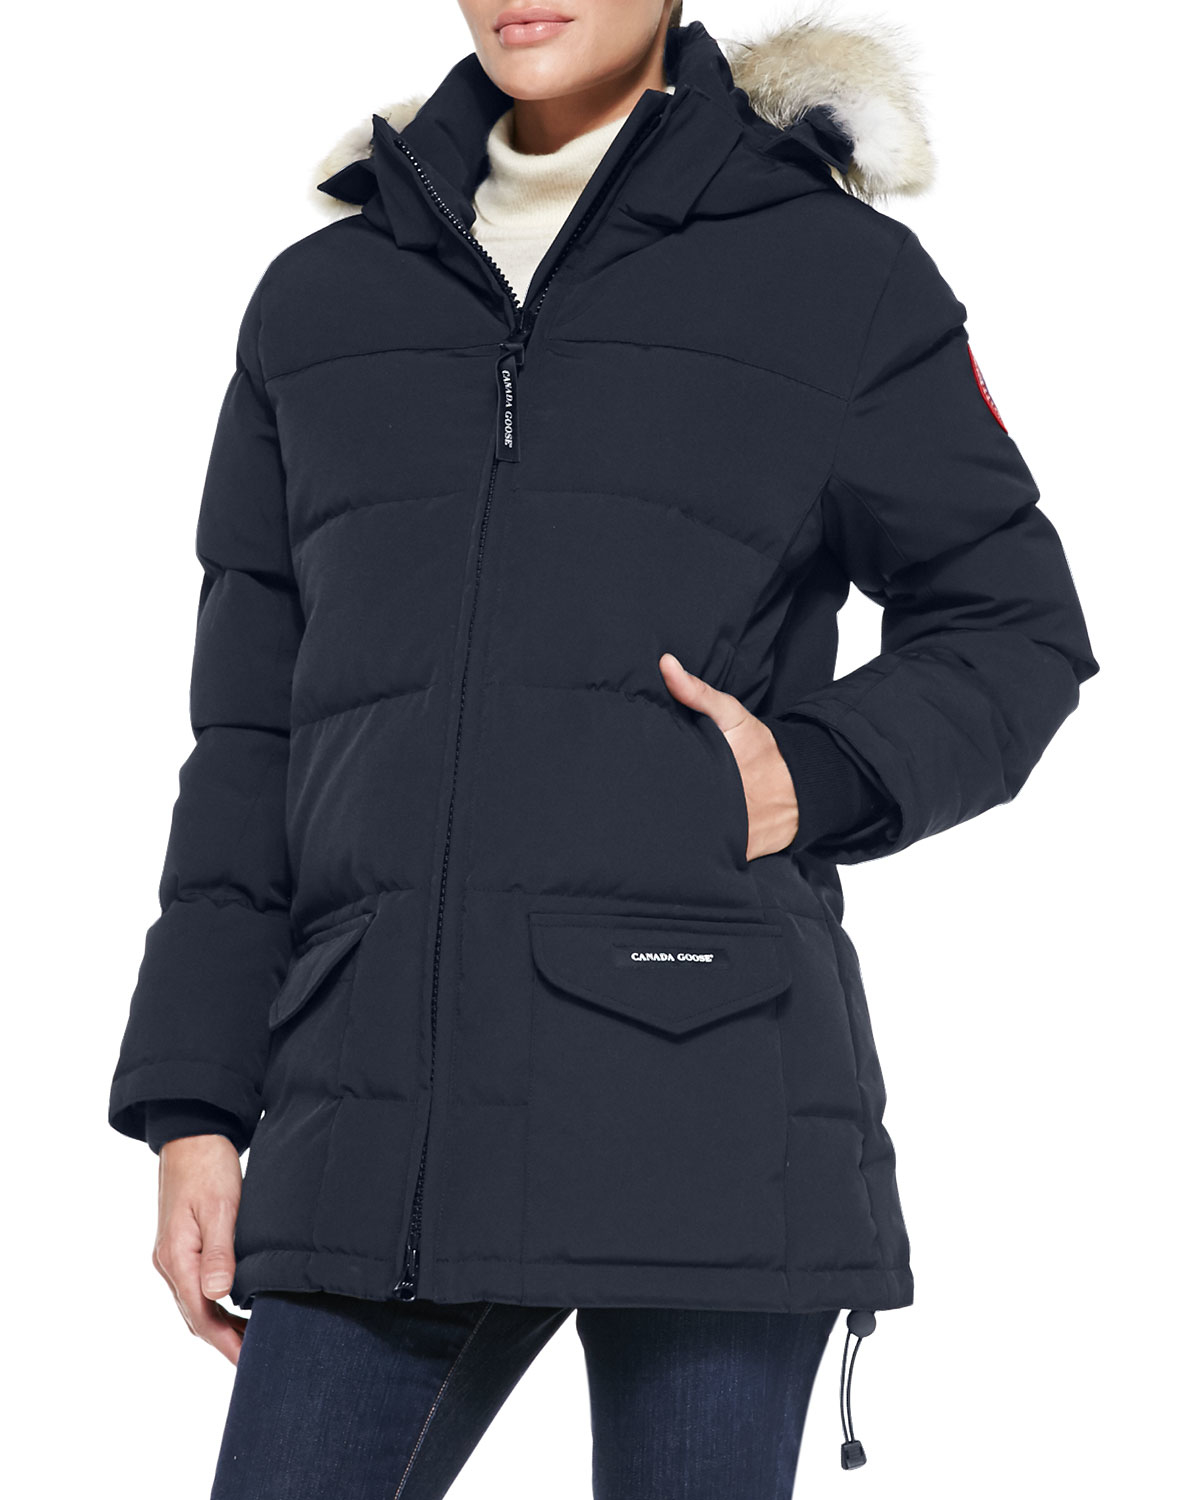 Canada Goose Outlet Store Online,New Style all kinds of Cheap Canada Goose Jackets,Expedition Parka,Vest For Men,Women and Kids,High Quality,No Tax!